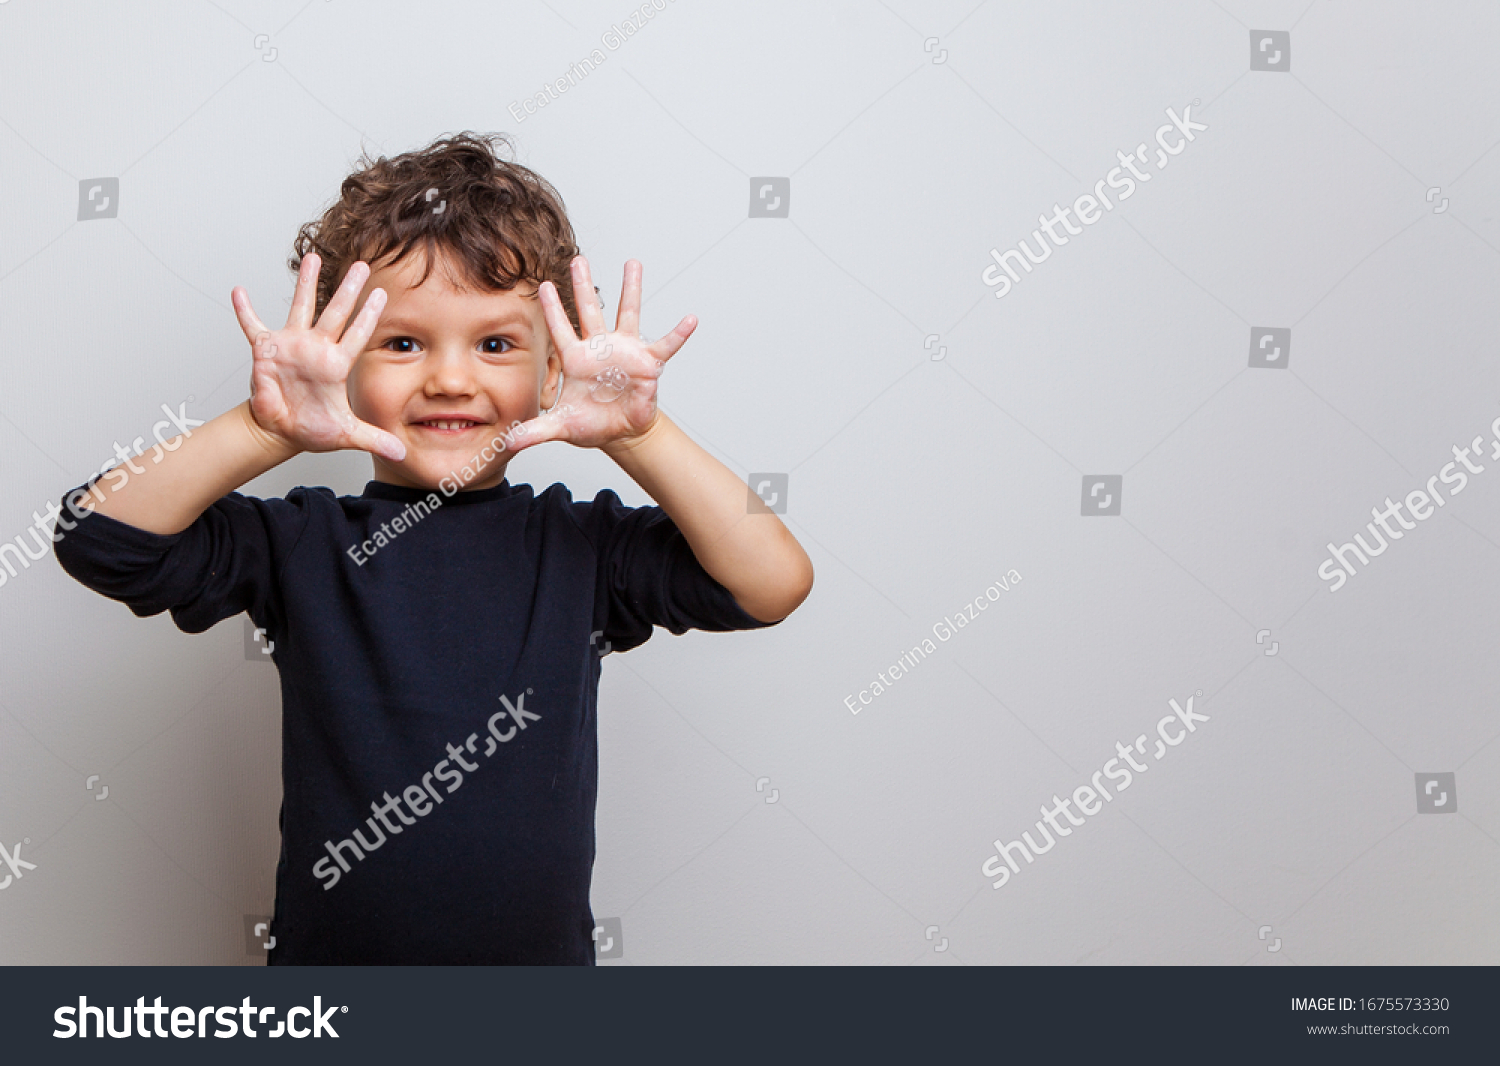 cute baby shows soaped hands to the camera. hygiene procedures. prevention of viral and bacterial diseases. Hand disinfection. studio photo isolated on white background #1675573330